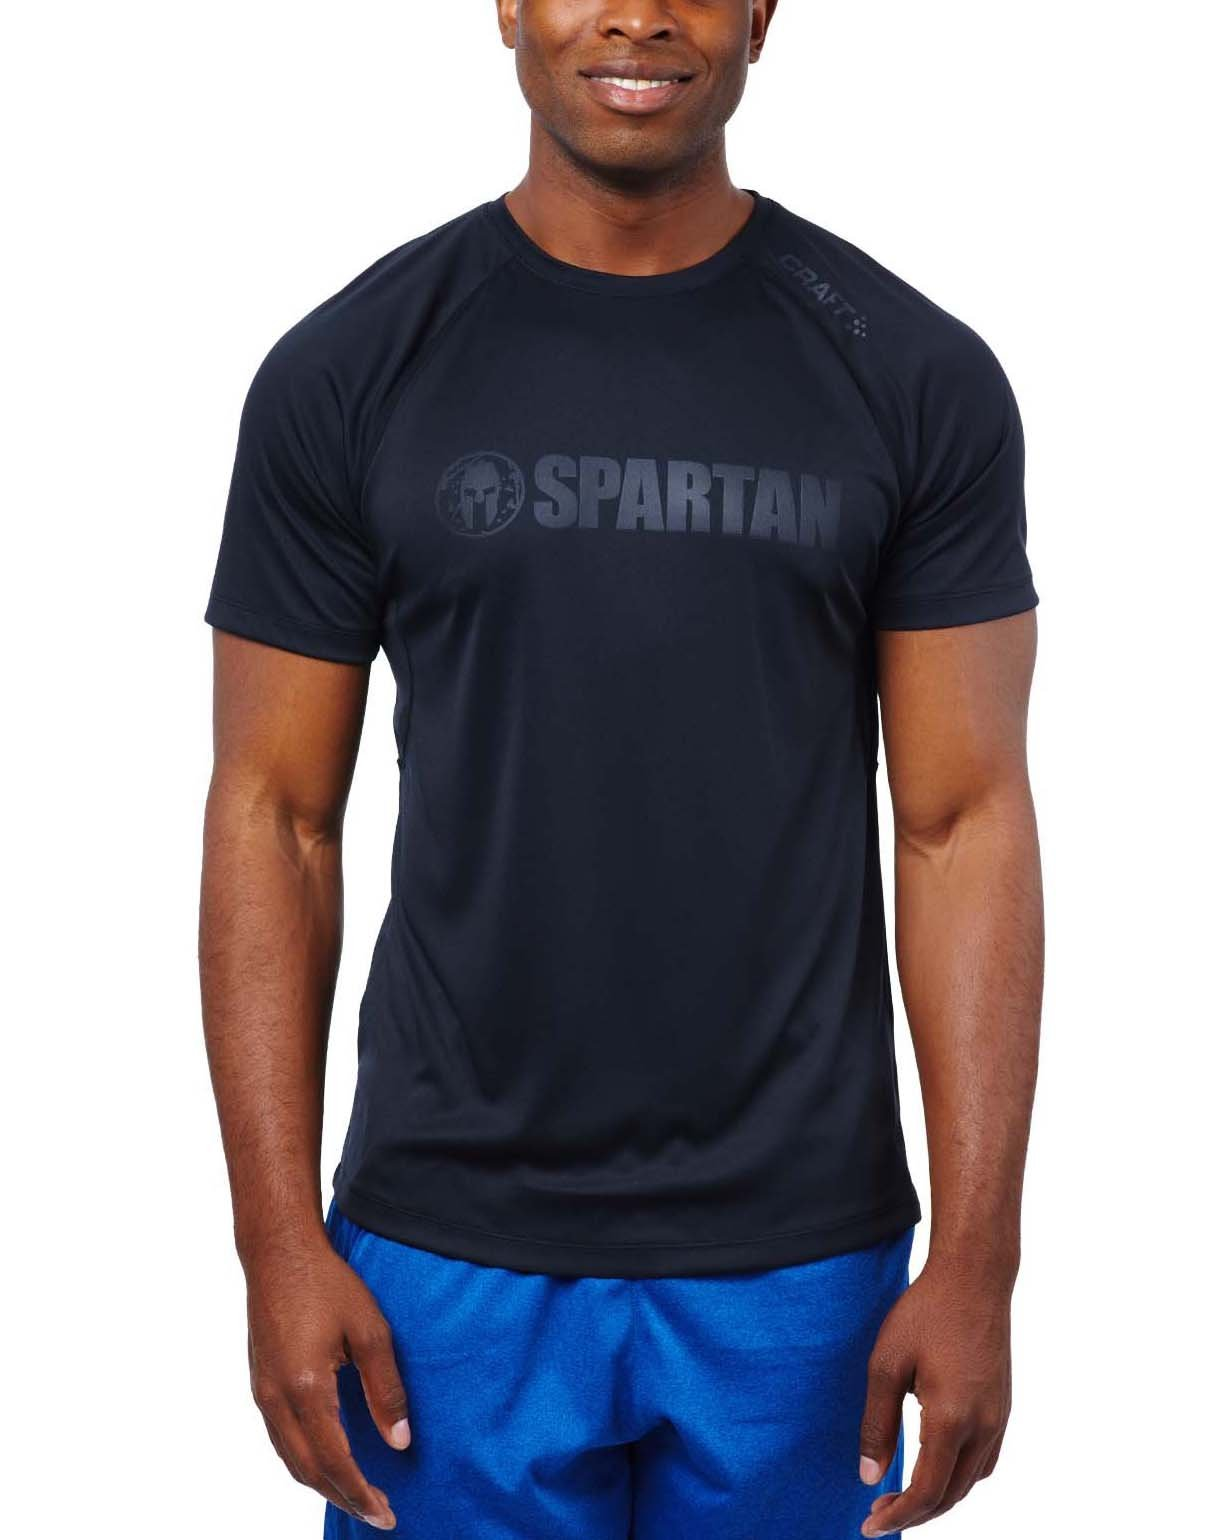 CRAFT SPARTAN By CRAFT Prime Tee - Men's Black S